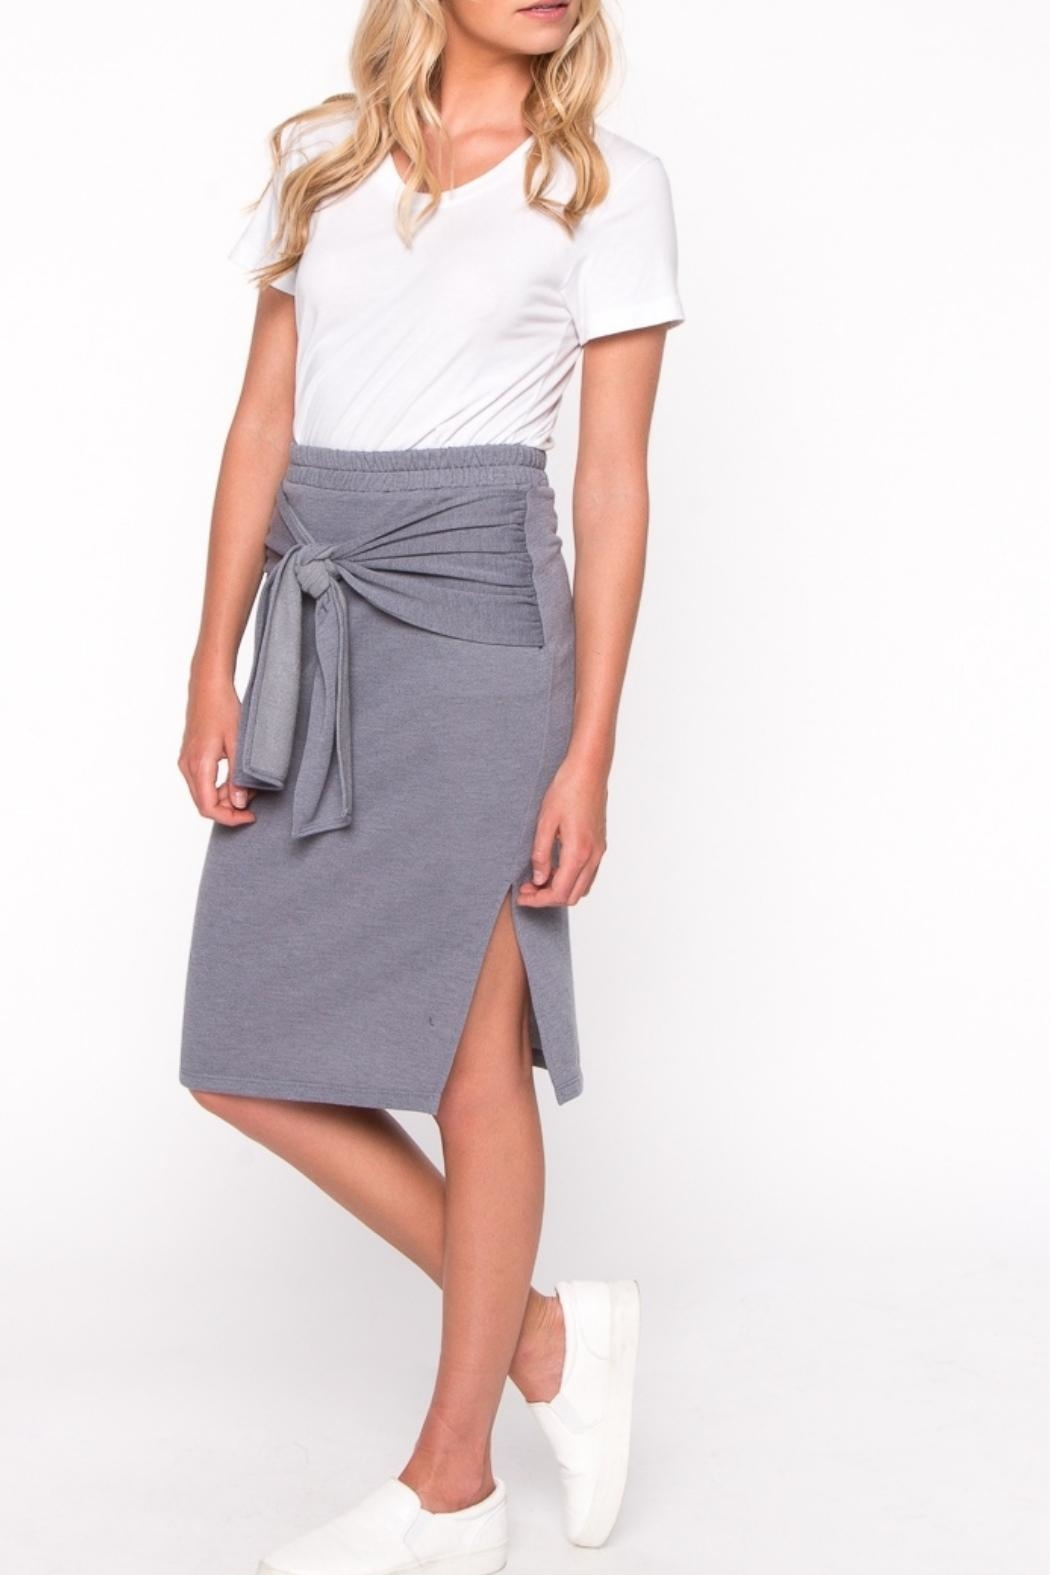 Everly Front Tie Skirt - Front Full Image